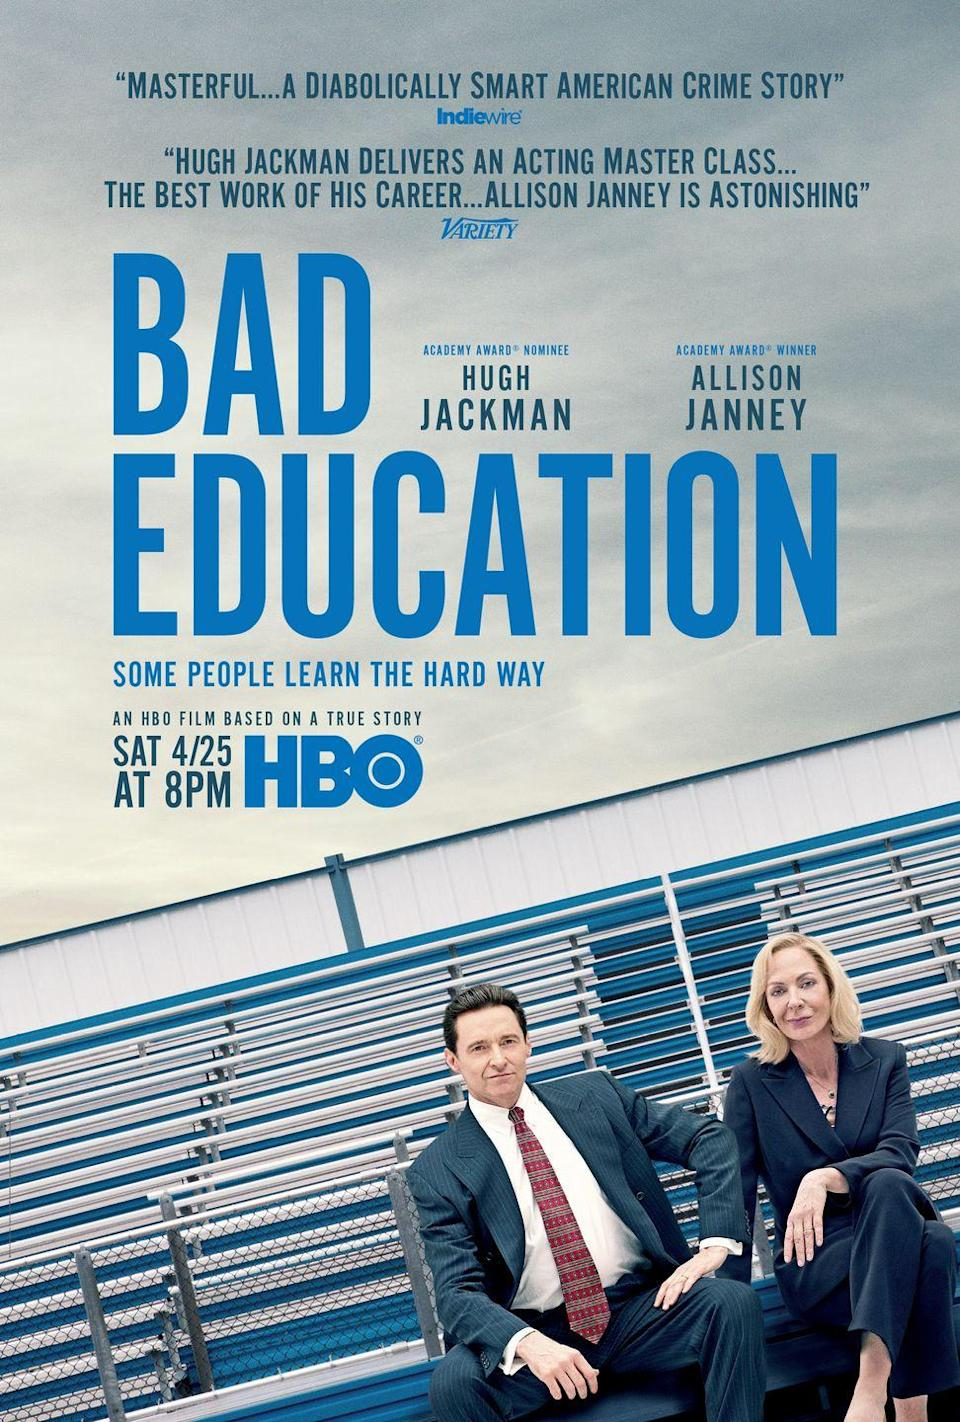 """<p><em><a href=""""http://www.womenshealthmag.com/life/a32227292/bad-education-hbo-frank-tassone-true-story/"""" rel=""""nofollow noopener"""" target=""""_blank"""" data-ylk=""""slk:Bad Education"""" class=""""link rapid-noclick-resp"""">Bad Education</a></em> tells the wild true story of the largest public school embezzlement scandal in American history, which brought down a superstar superintendent, played by Hugh Jackman, and his complicit assistant, played by Allison Janney.</p><p><a class=""""link rapid-noclick-resp"""" href=""""https://go.redirectingat.com?id=74968X1596630&url=https%3A%2F%2Fwww.hulu.com%2Fmovie%2Fbad-education-2718f707-01ba-49a8-a689-a3ede02b9a1d%3Fentity_id%3D2718f707-01ba-49a8-a689-a3ede02b9a1d&sref=https%3A%2F%2Fwww.womenshealthmag.com%2Flife%2Fg27486022%2Fbest-movies-based-on-true-stories%2F"""" rel=""""nofollow noopener"""" target=""""_blank"""" data-ylk=""""slk:Watch Here"""">Watch Here</a></p>"""